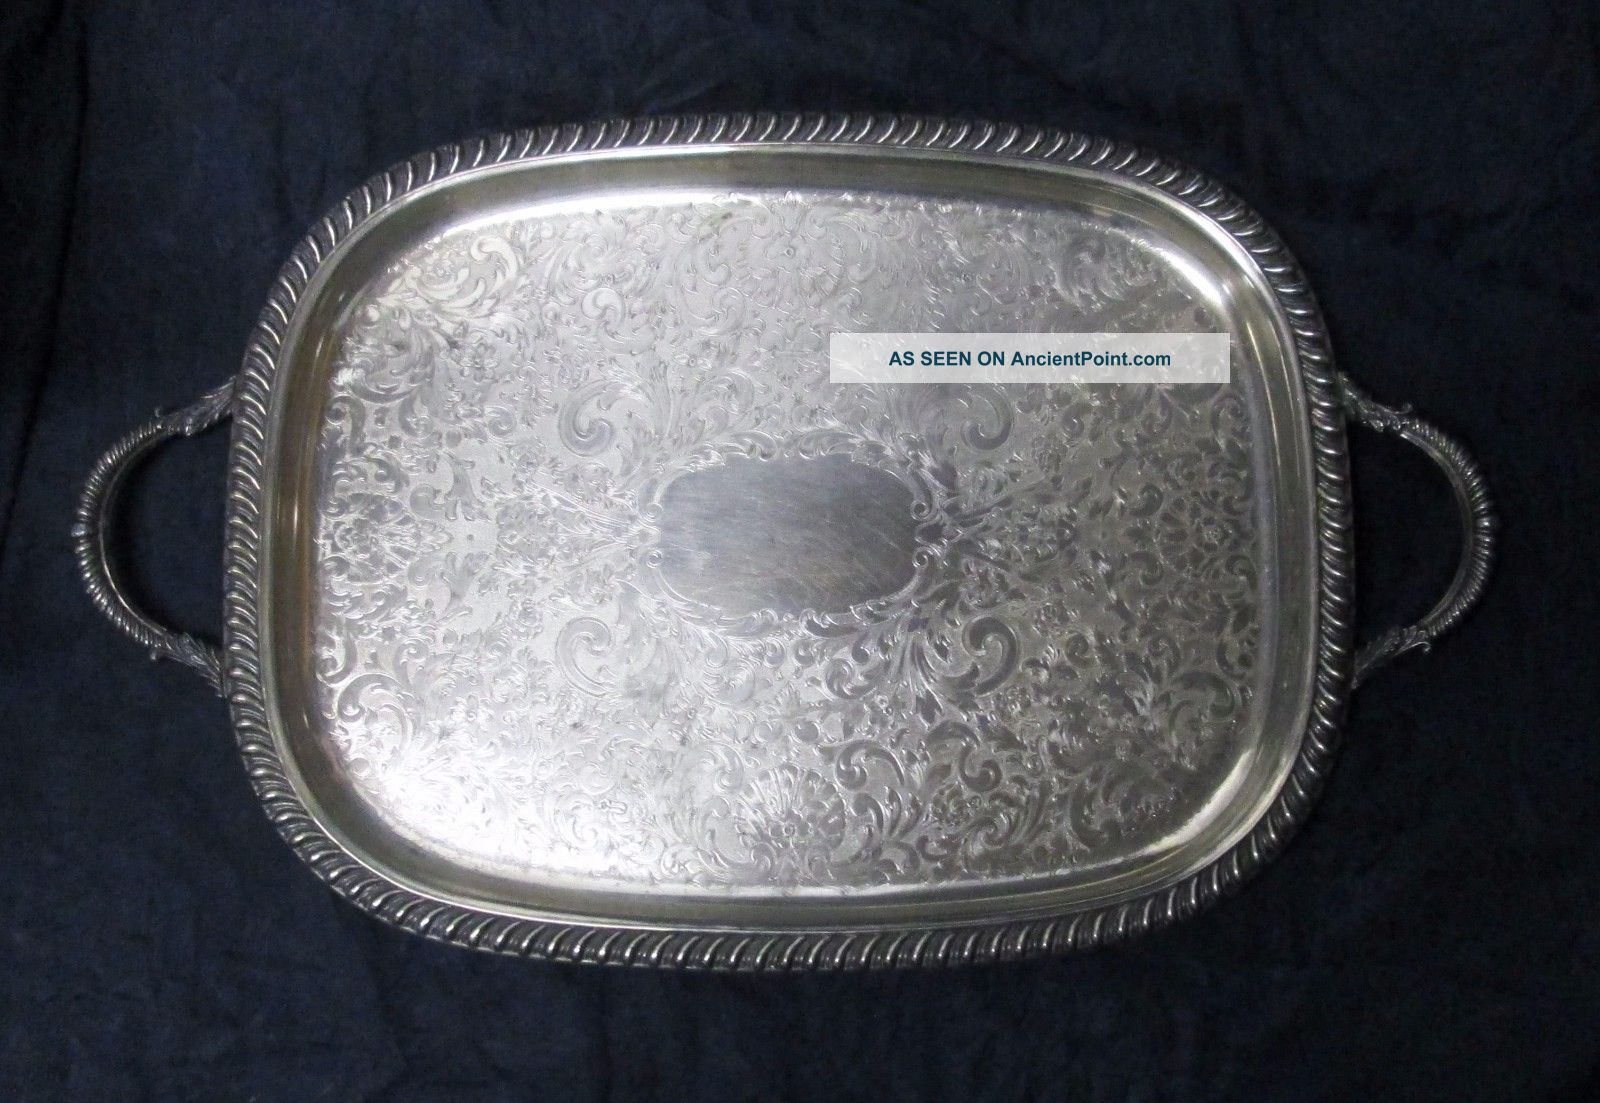 Vtg Silver Plate Large Rectangular Two - Handle Footed Serving Tray Ornate 1920 - 30 Platters & Trays photo